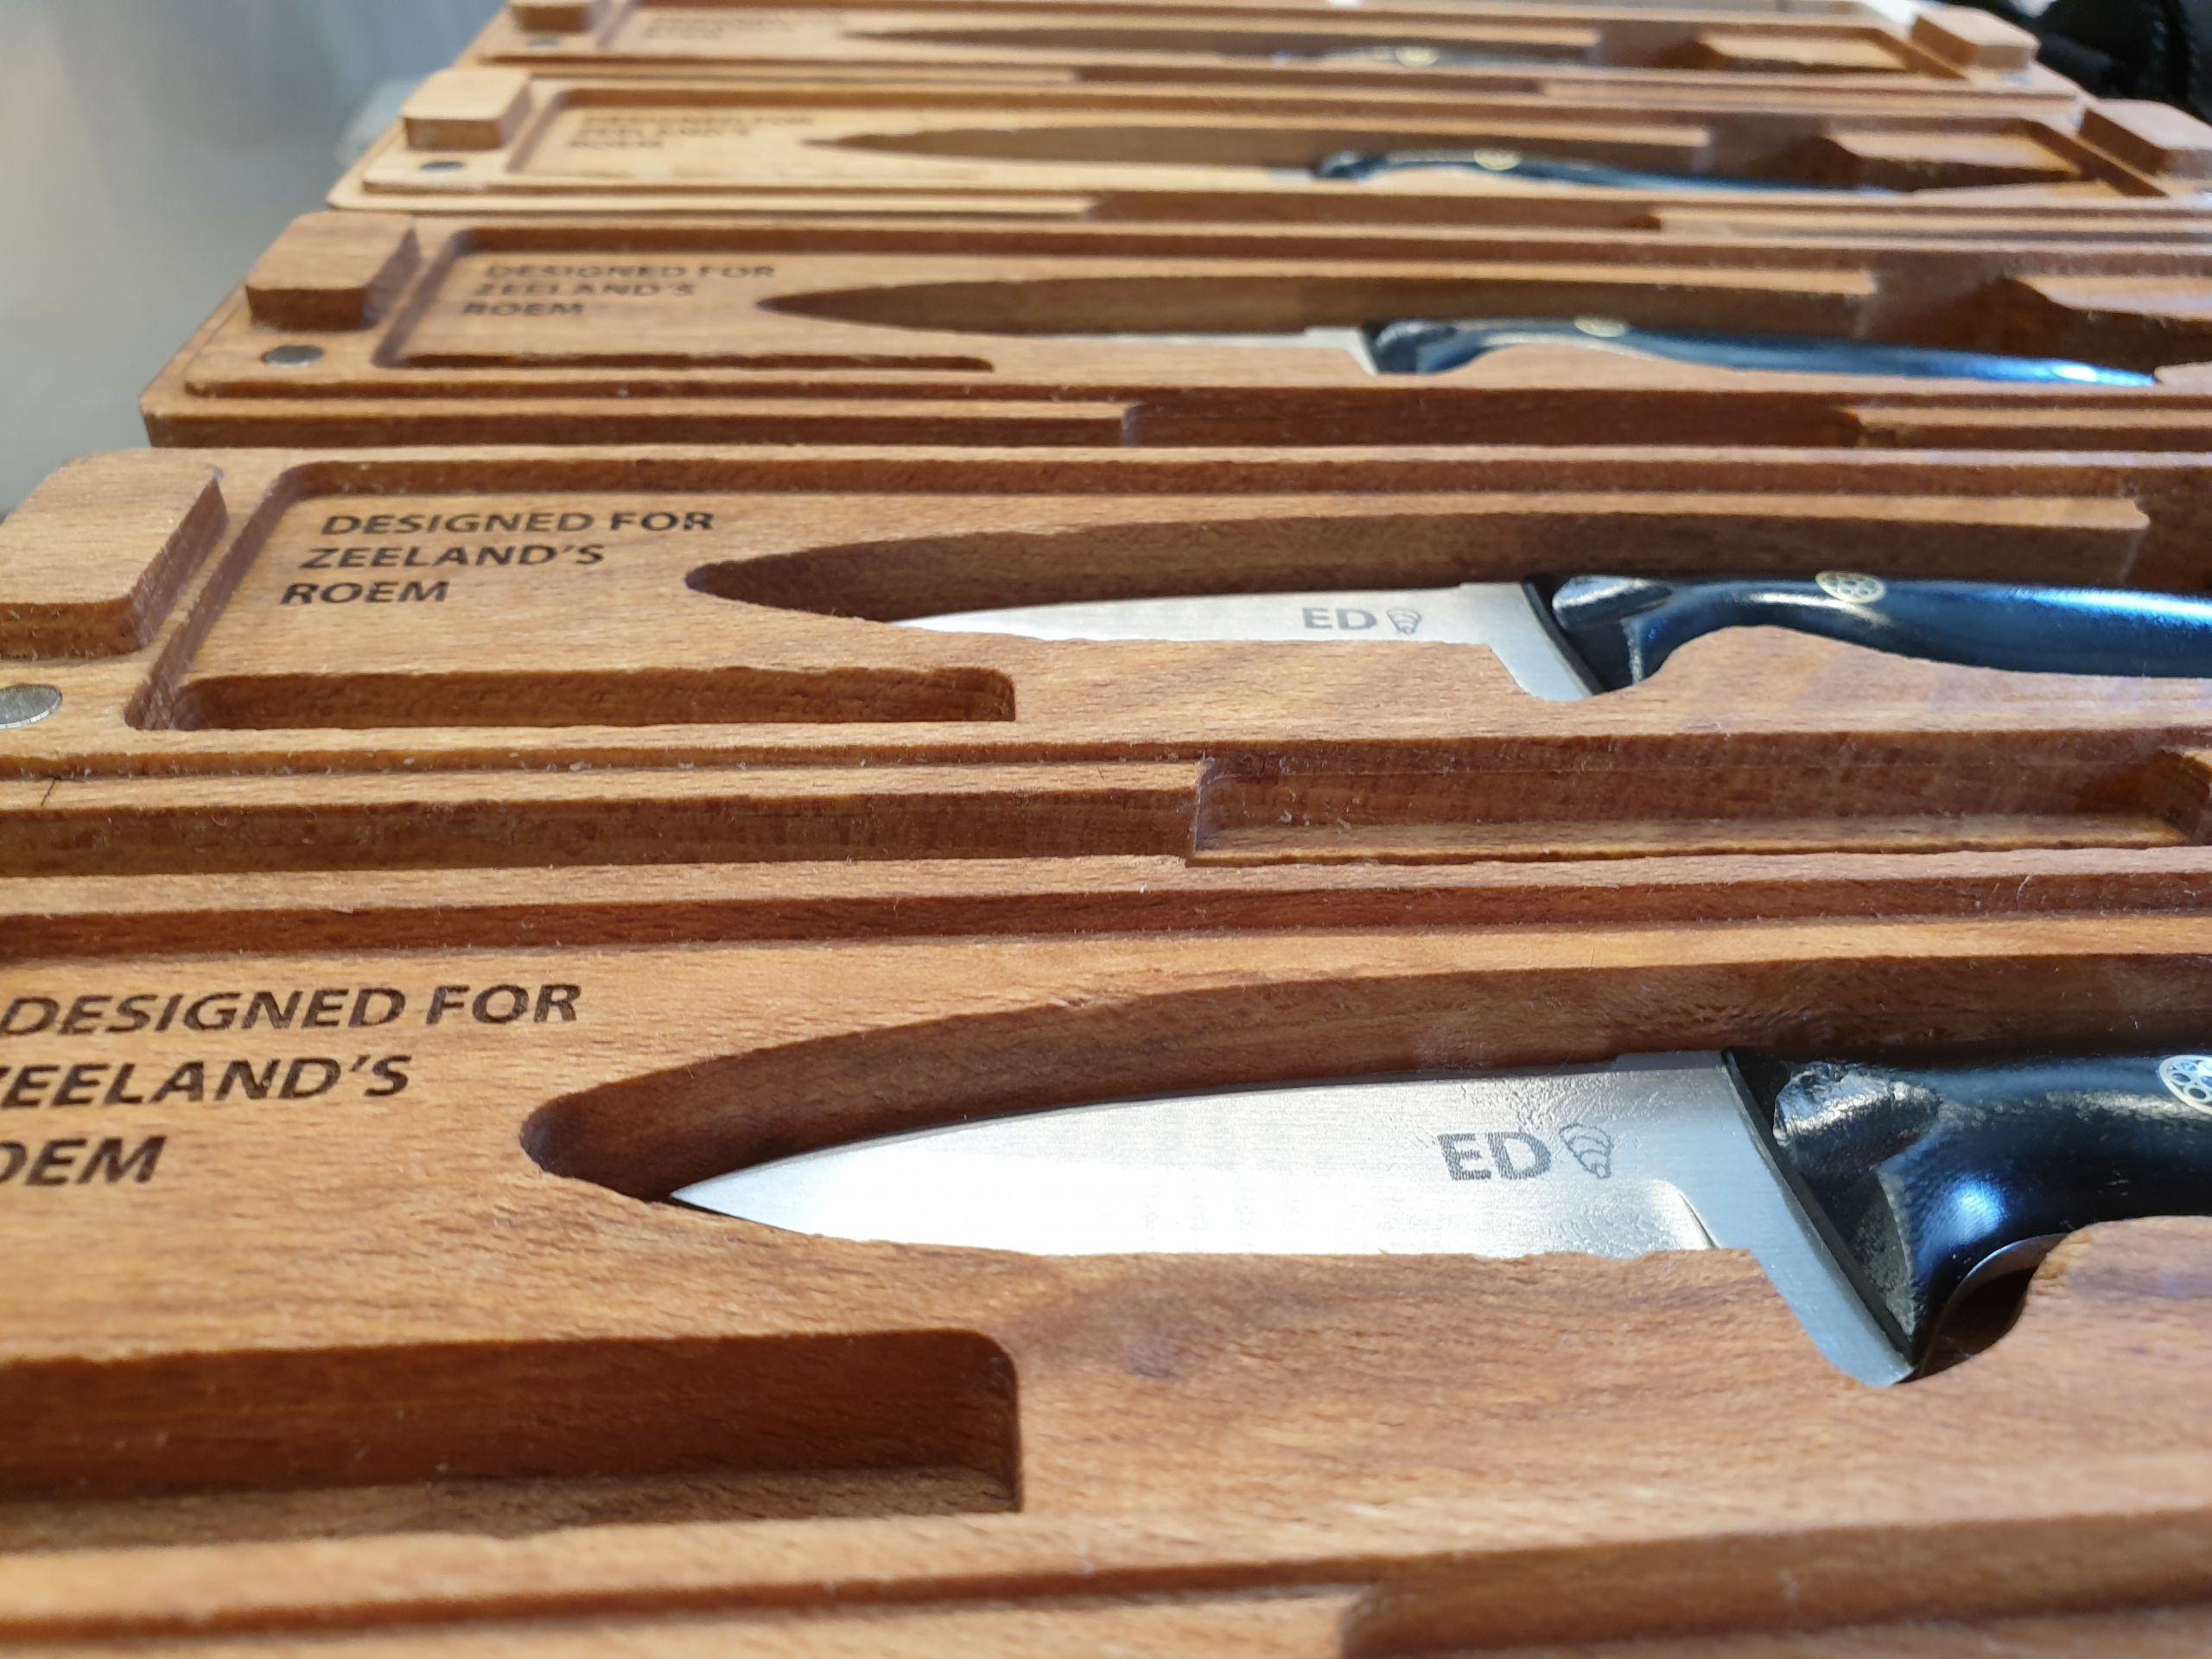 The cases and knives for the Pearl oyster knife series for Zeeland's Roem